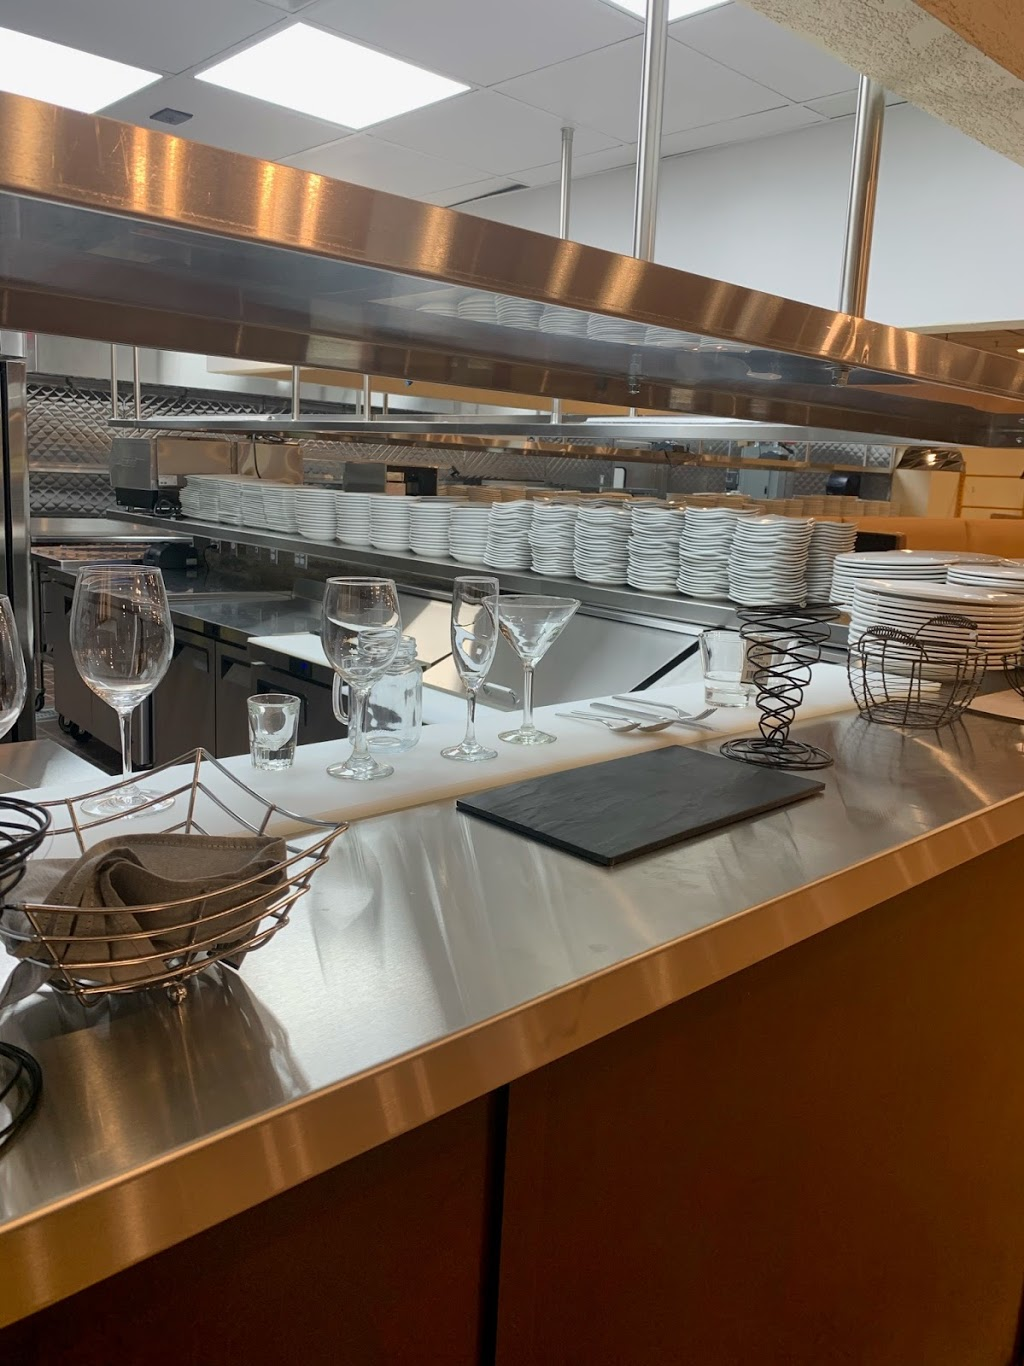 OUR PLACE Kitchen & Bar | restaurant | 1A Newbury St, Peabody, MA 01960, USA | 9788172432 OR +1 978-817-2432